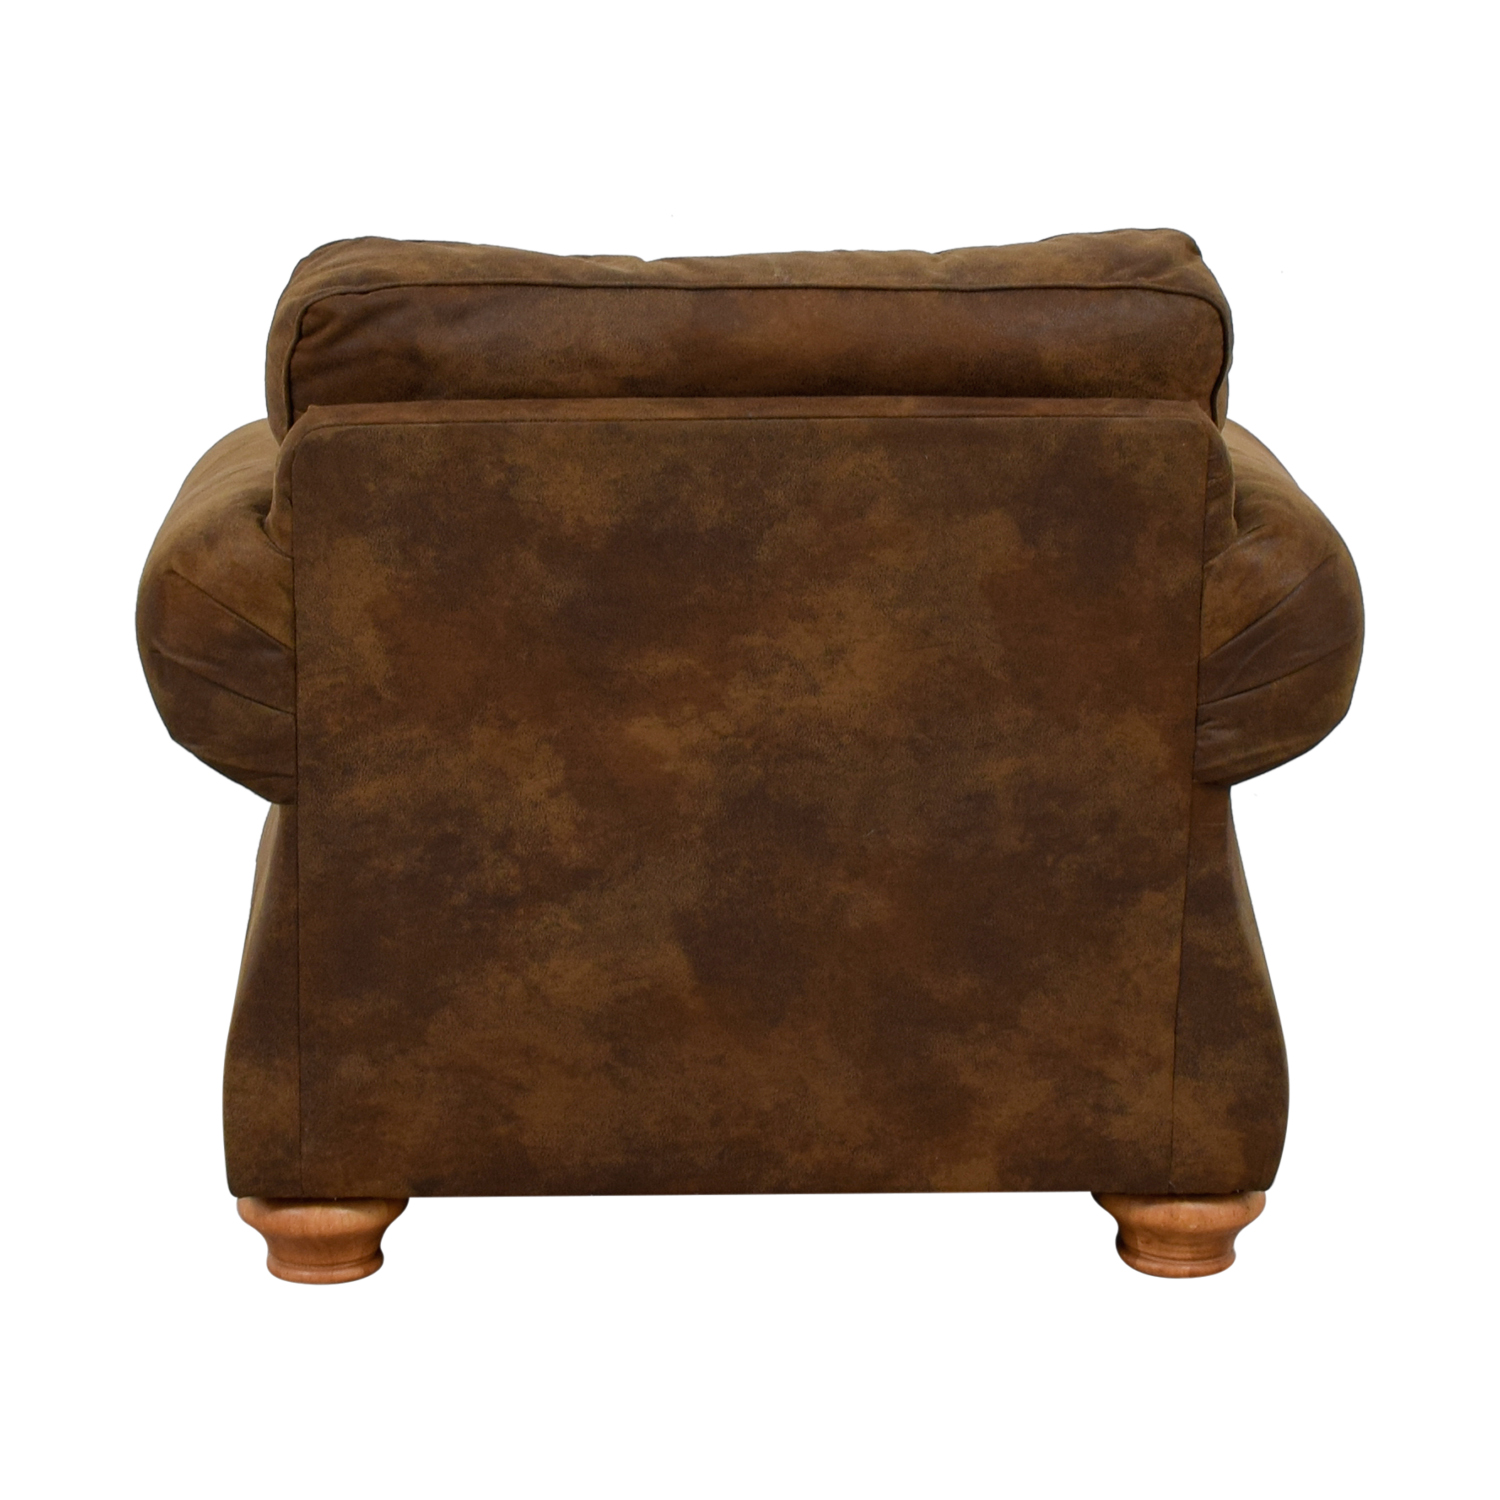 shop Raymour & Flanigan Raymour & Flanigan Brown Suede Lounge Chair online